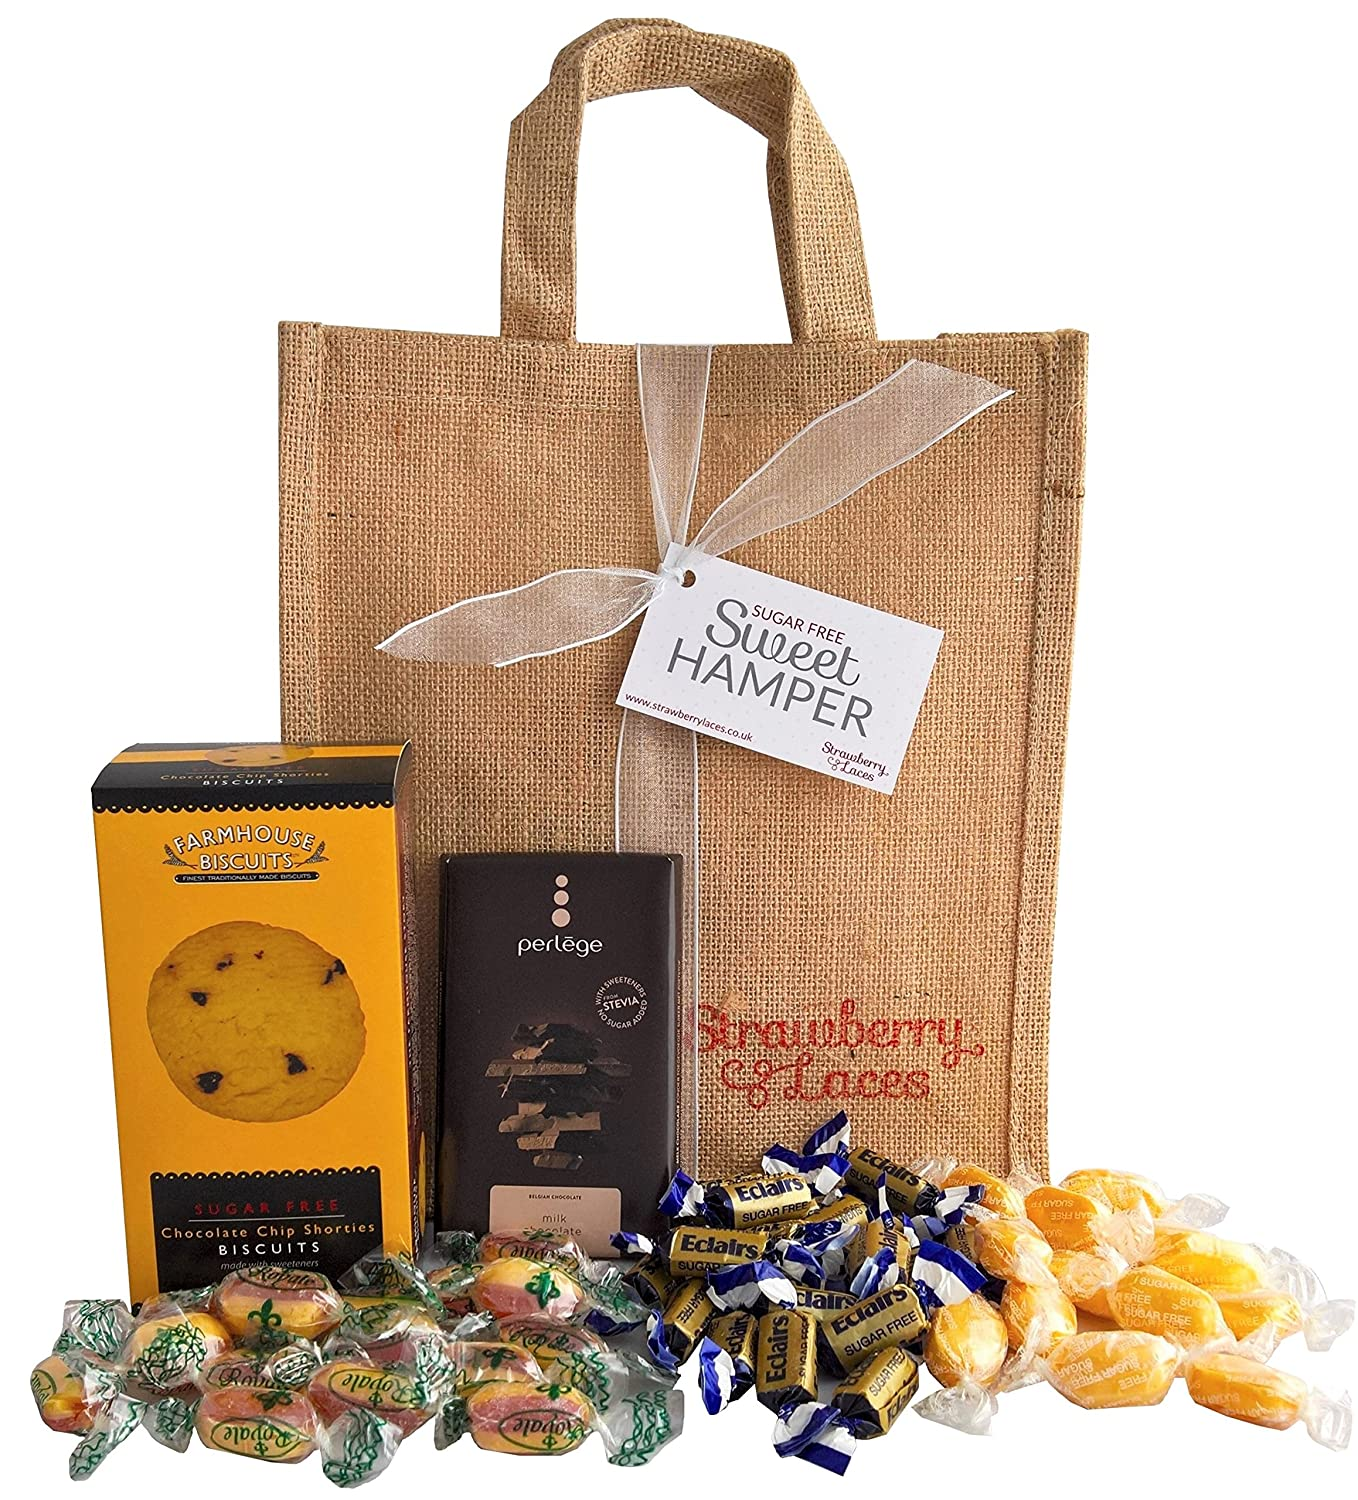 Sugar free hamper bag sweets biscuits chocolate great sugar free hamper bag sweets biscuits chocolate great diabetic gift for christmas birthday anniversary mothers fathers day valentines negle Image collections